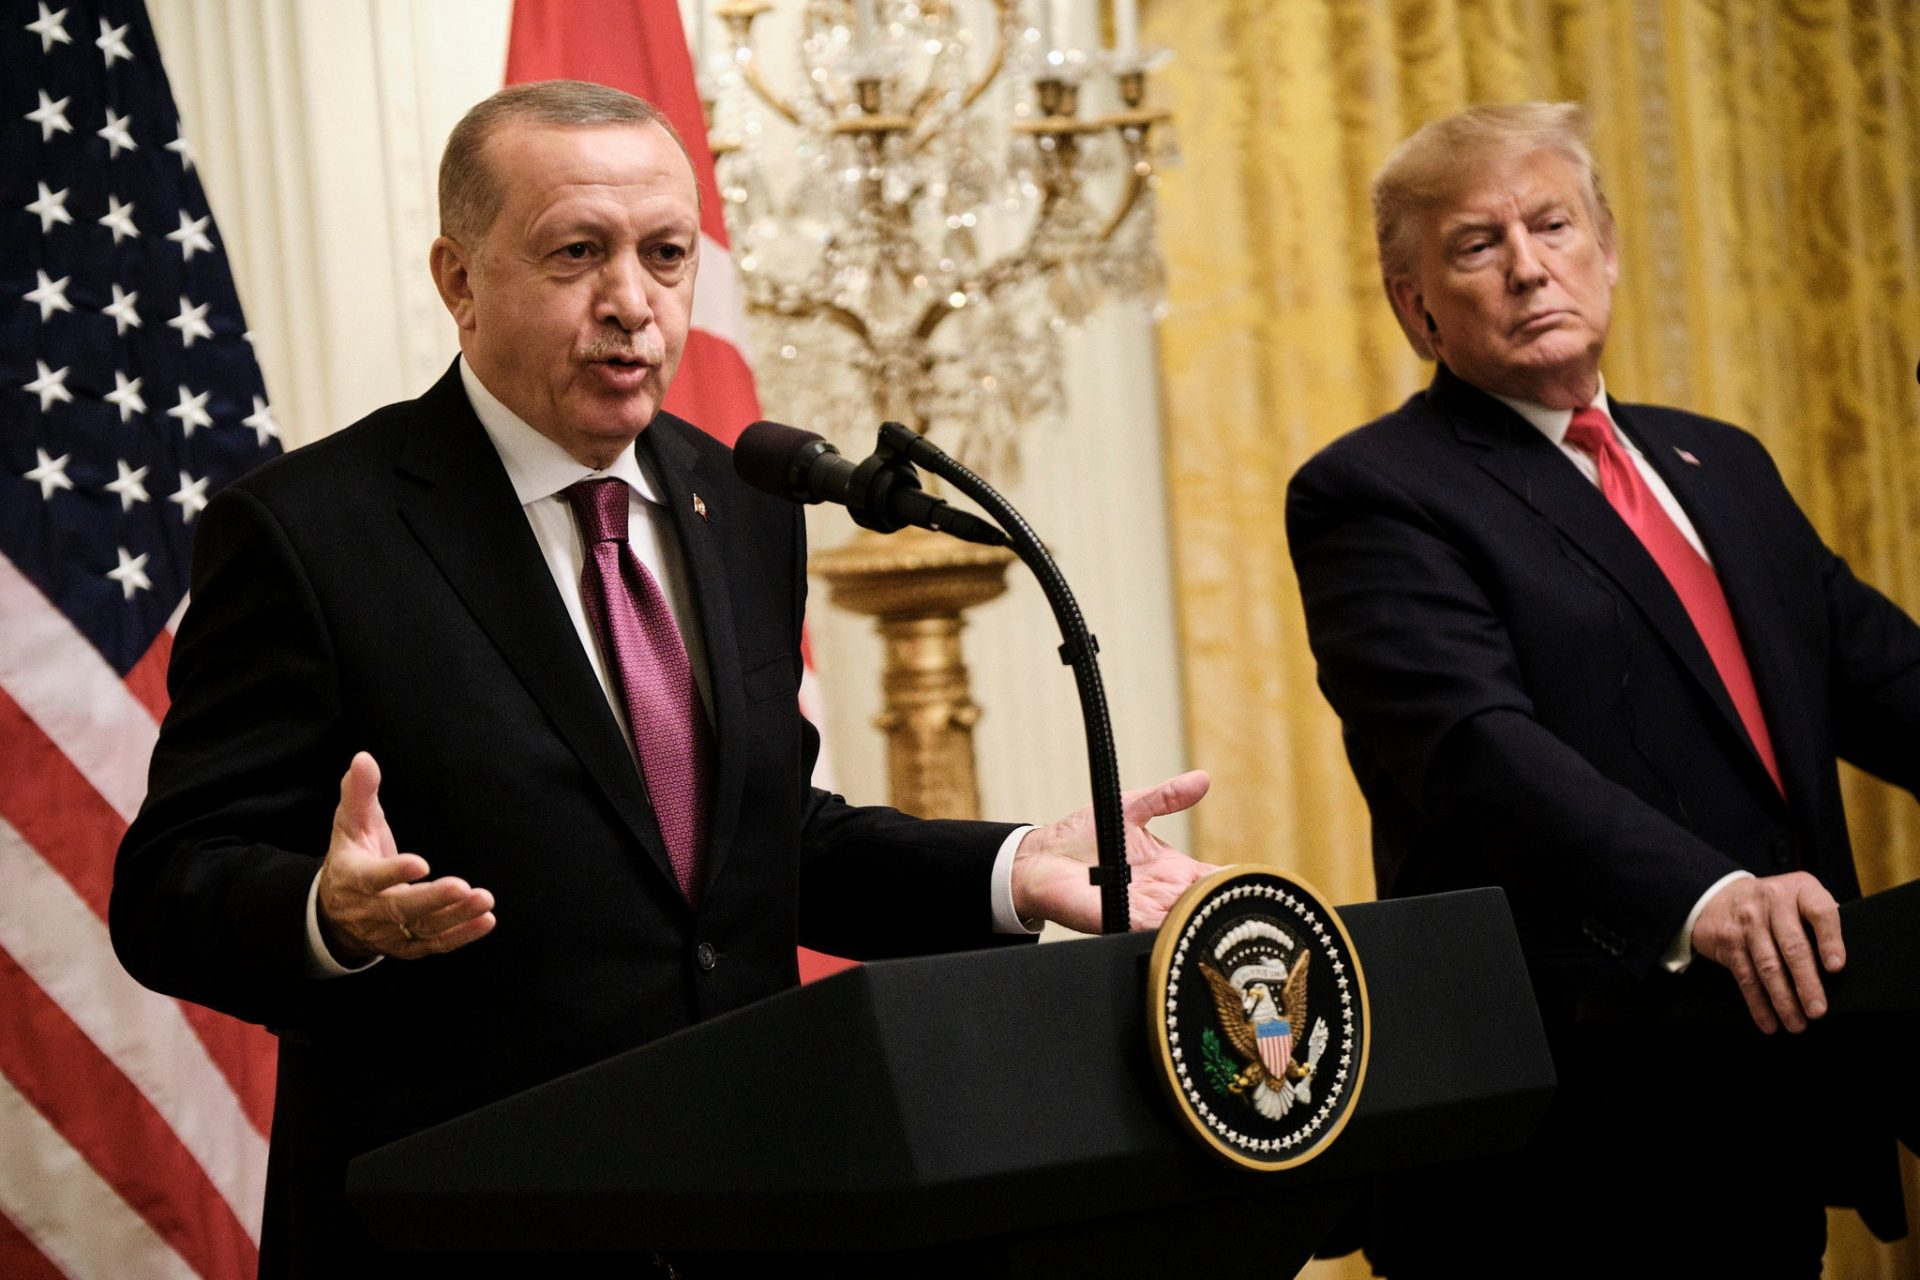 Behind the Scenes, Erdogan's Friendly White House Visit Had Tense Moments 10